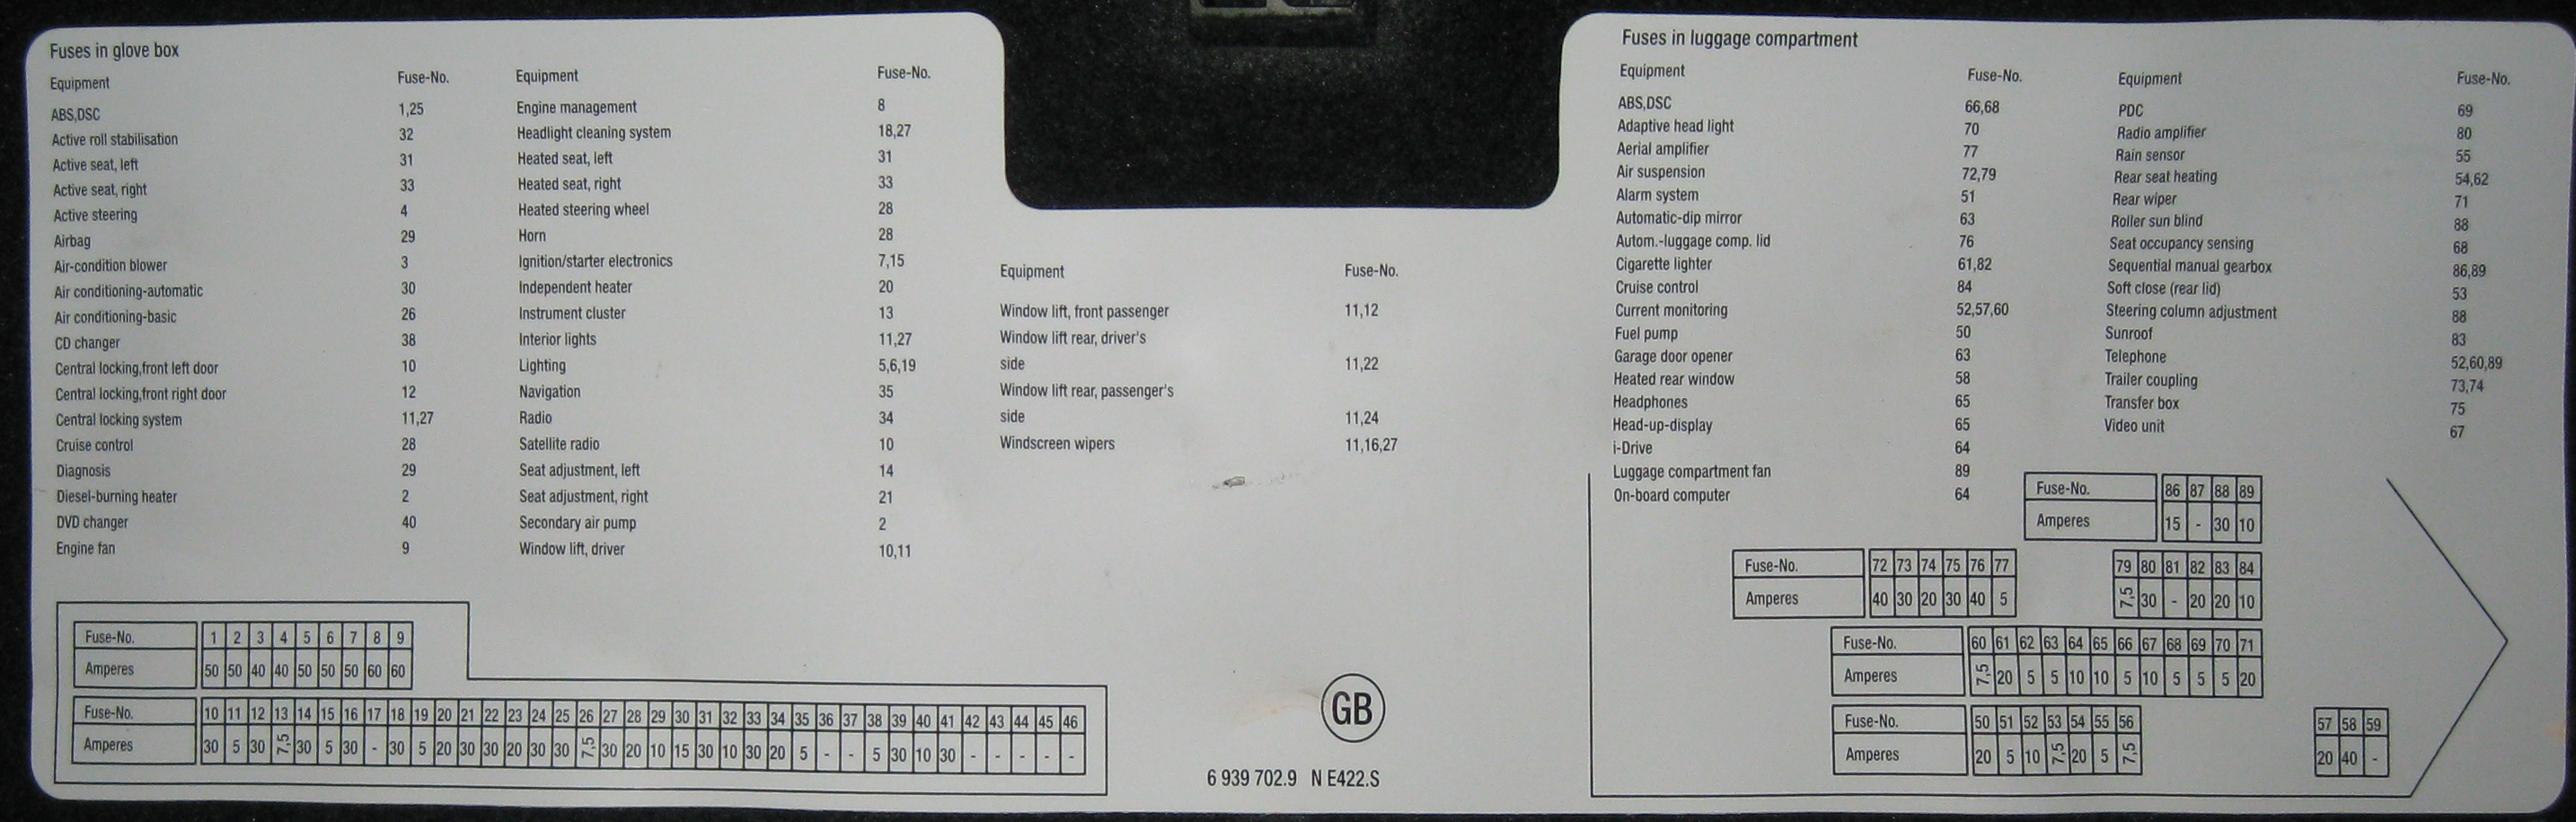 bmw 5 series fuse box layout auto electrical wiring diagram 97 bmw 328i e36 fuse box [ 2868 x 915 Pixel ]